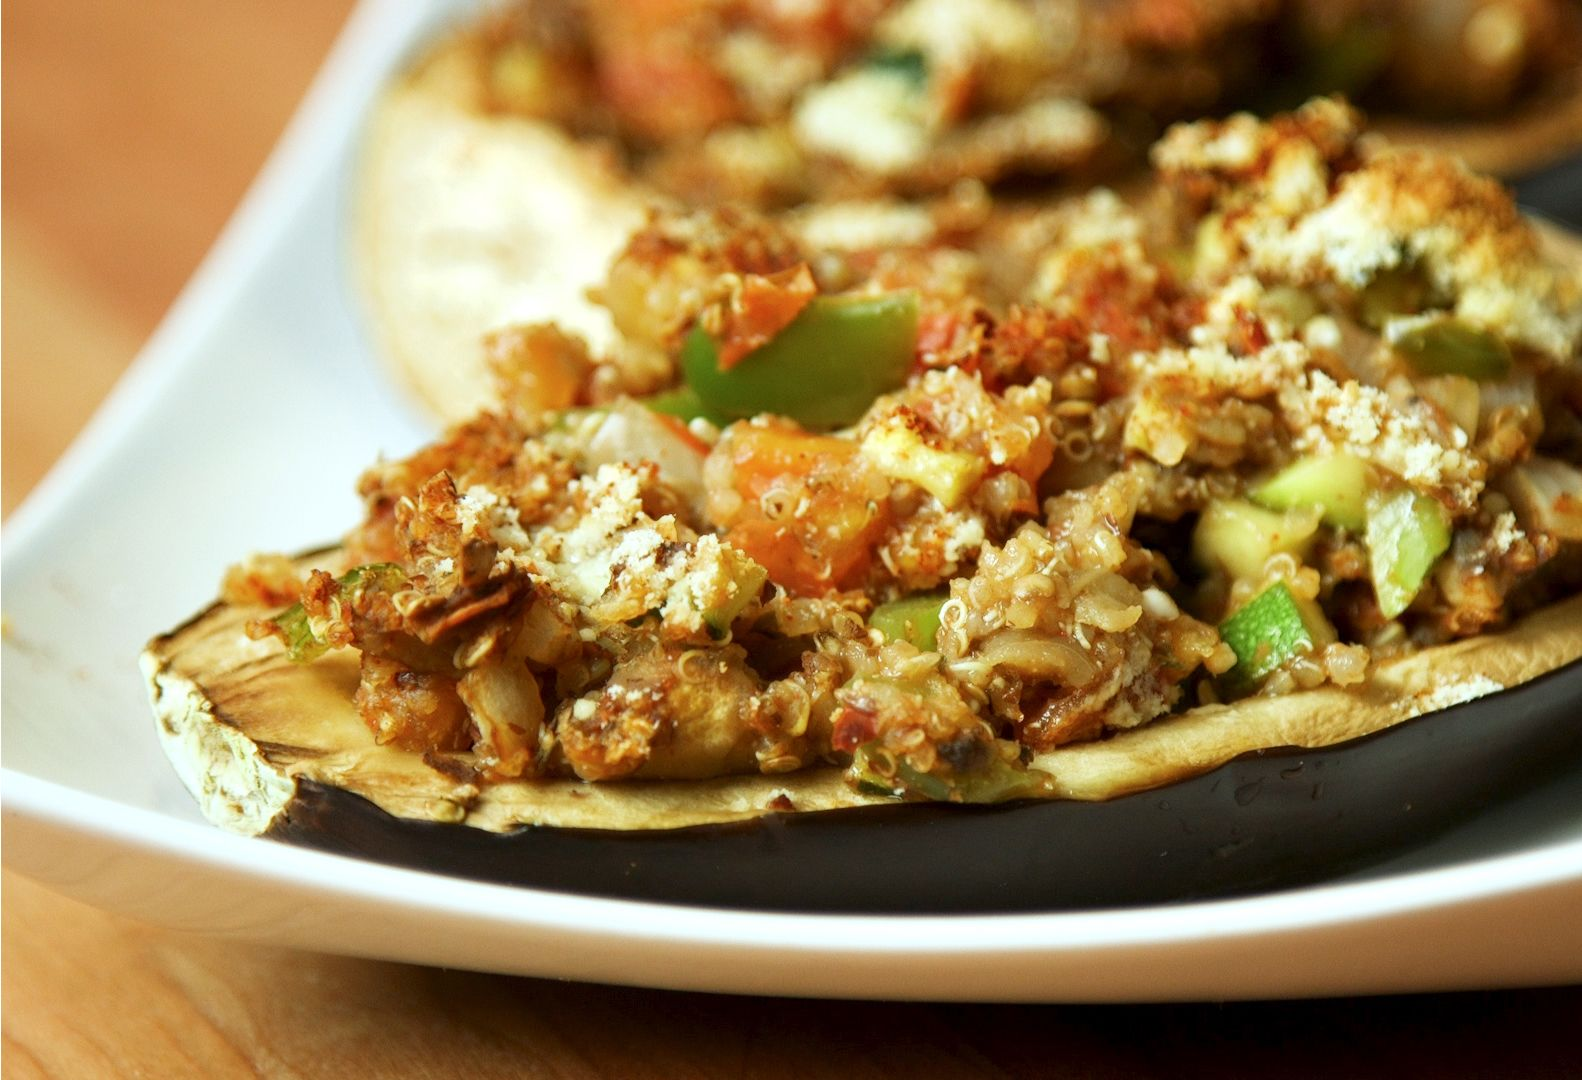 Close up picture of an eggplant shell filled with chopped vegetables and quinoa.